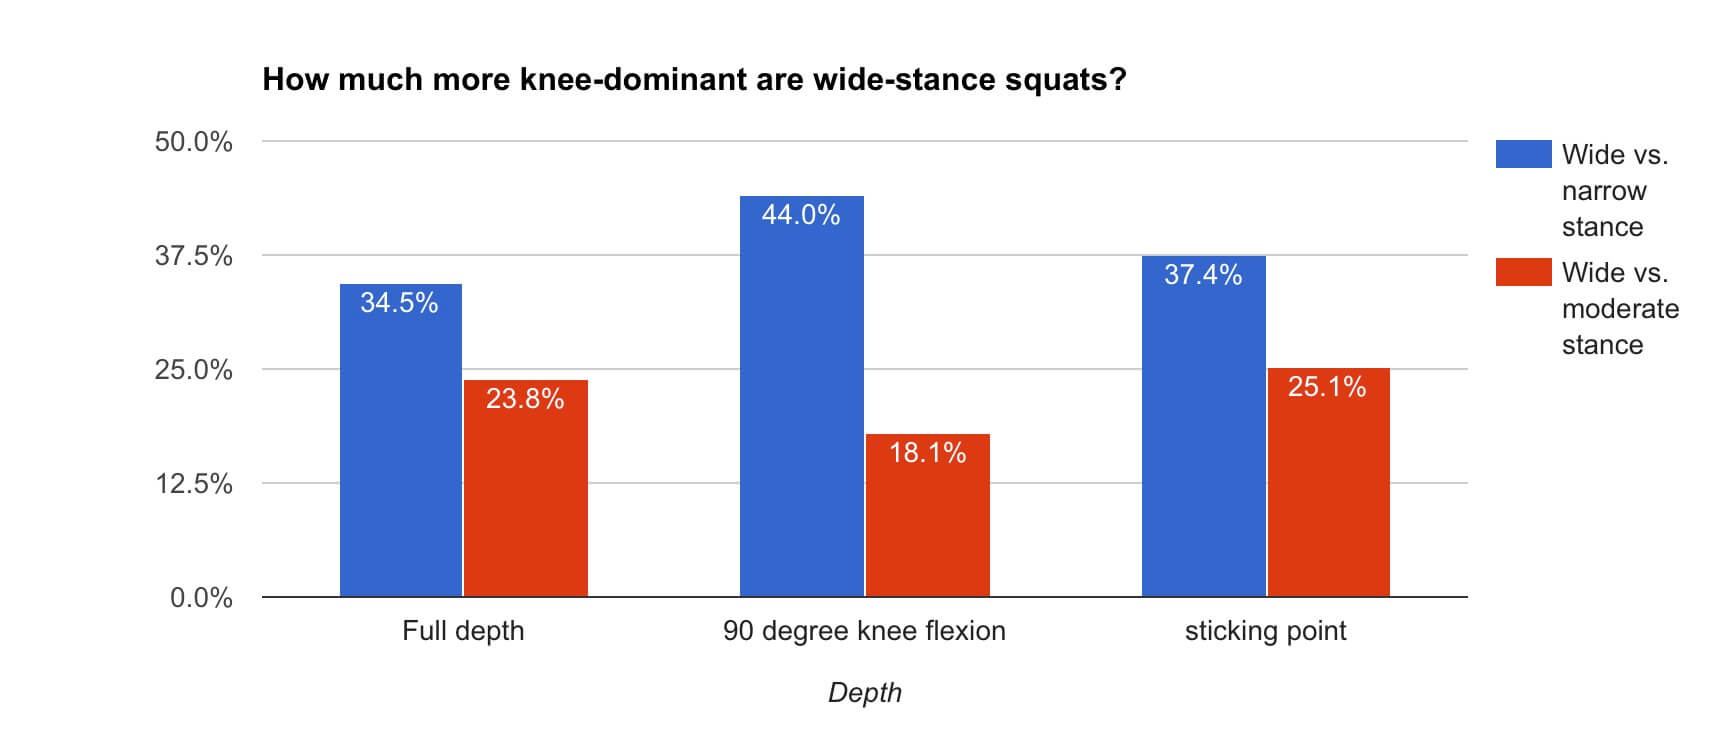 knee dominance in wide stance squat and narrow stance squat